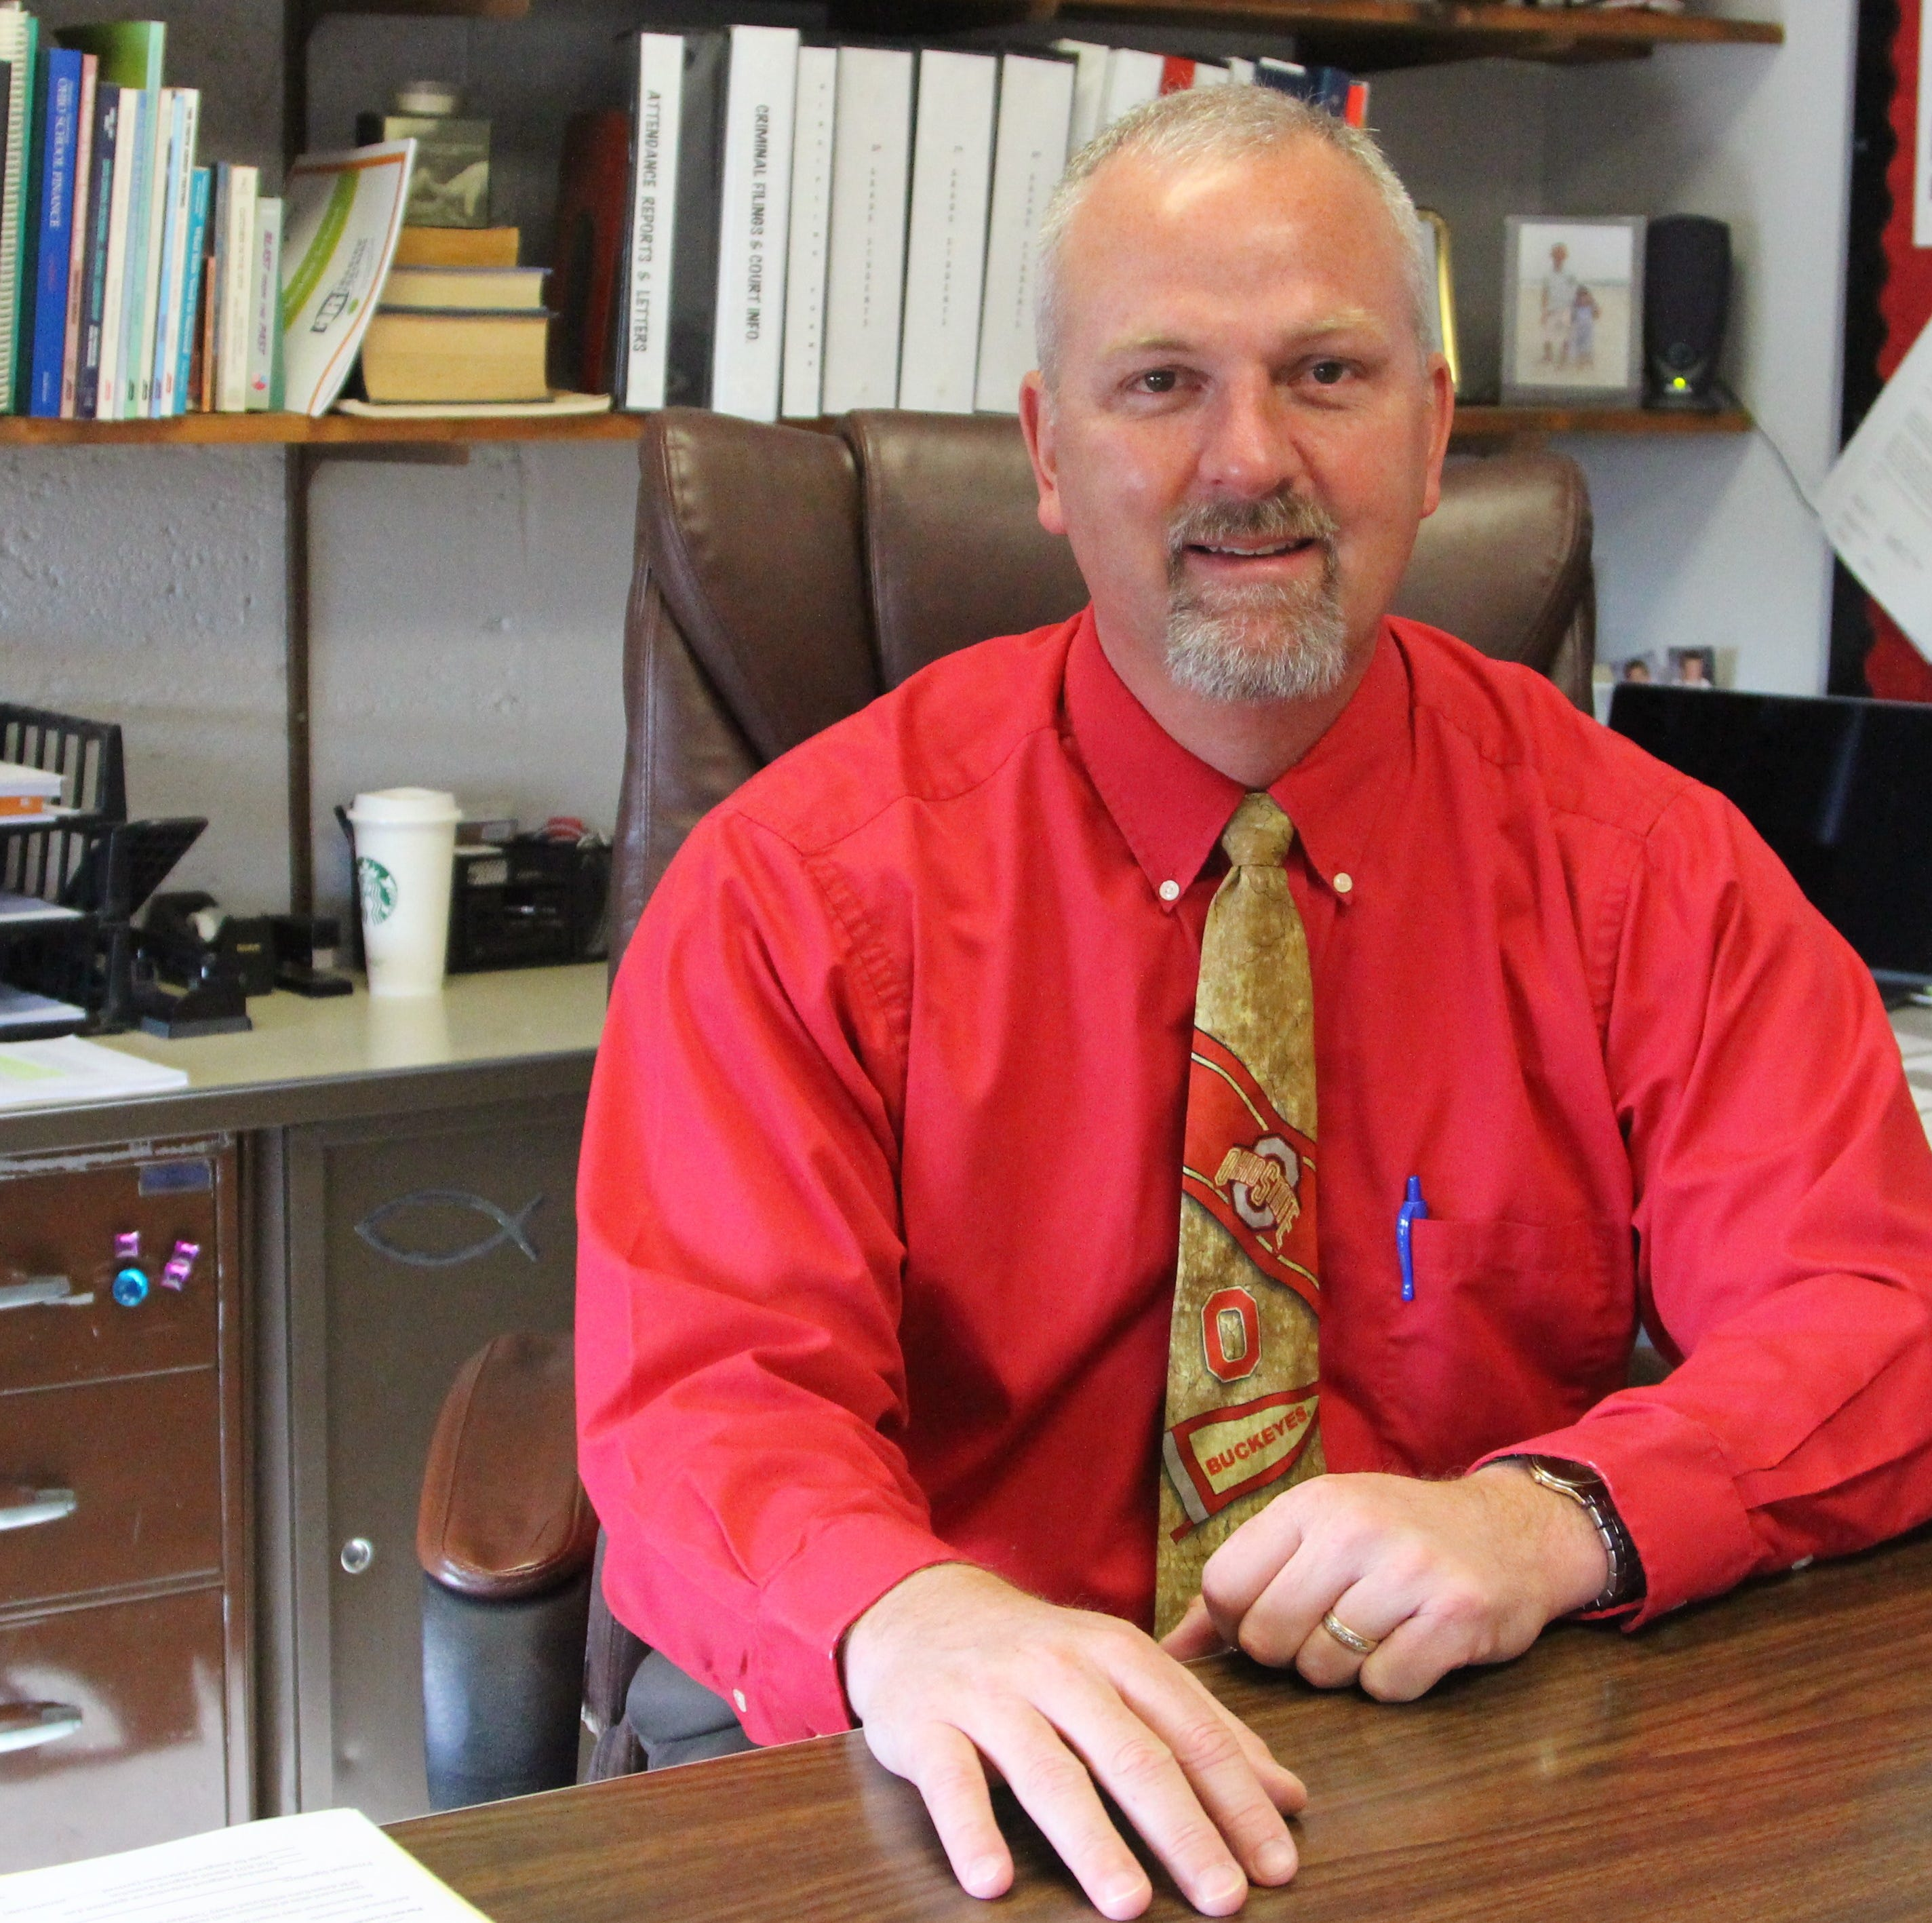 Pleasant's Warner to take over for Gast as Elgin superintendent